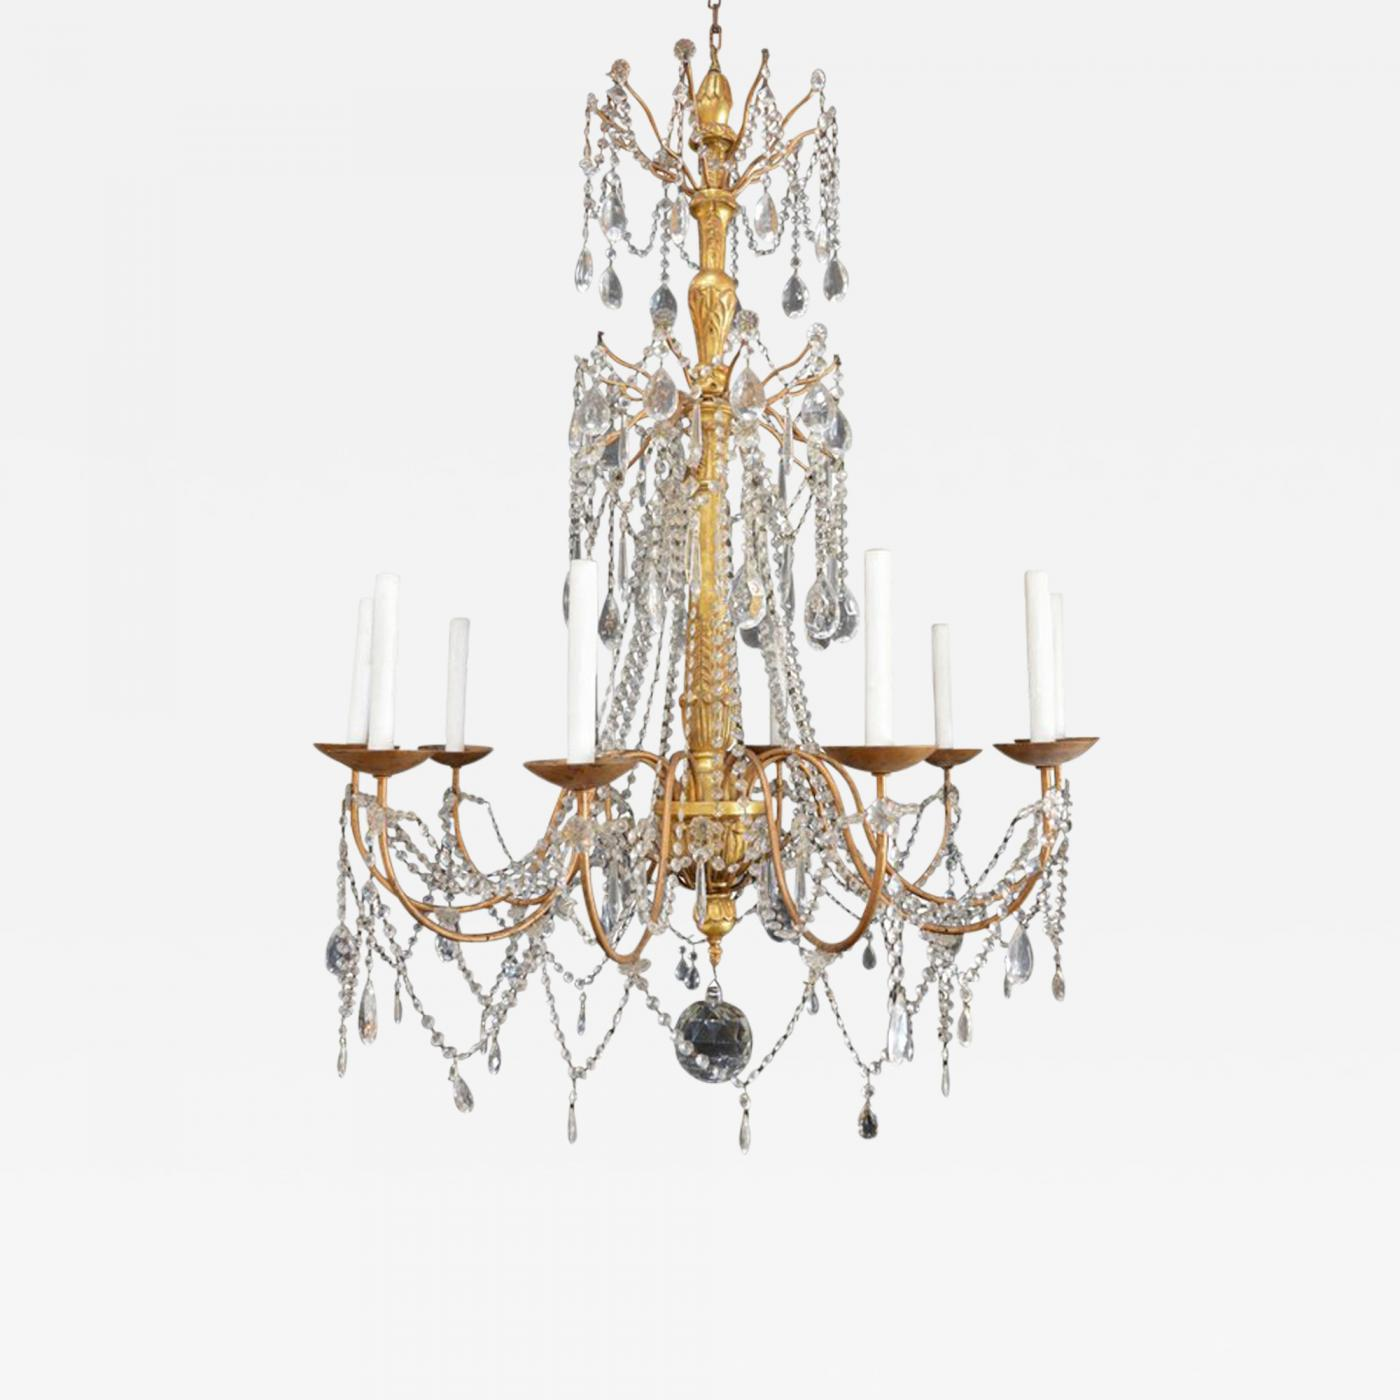 Listings Furniture Lighting Chandeliers And Pendants Hand Carved Wood Chandelier